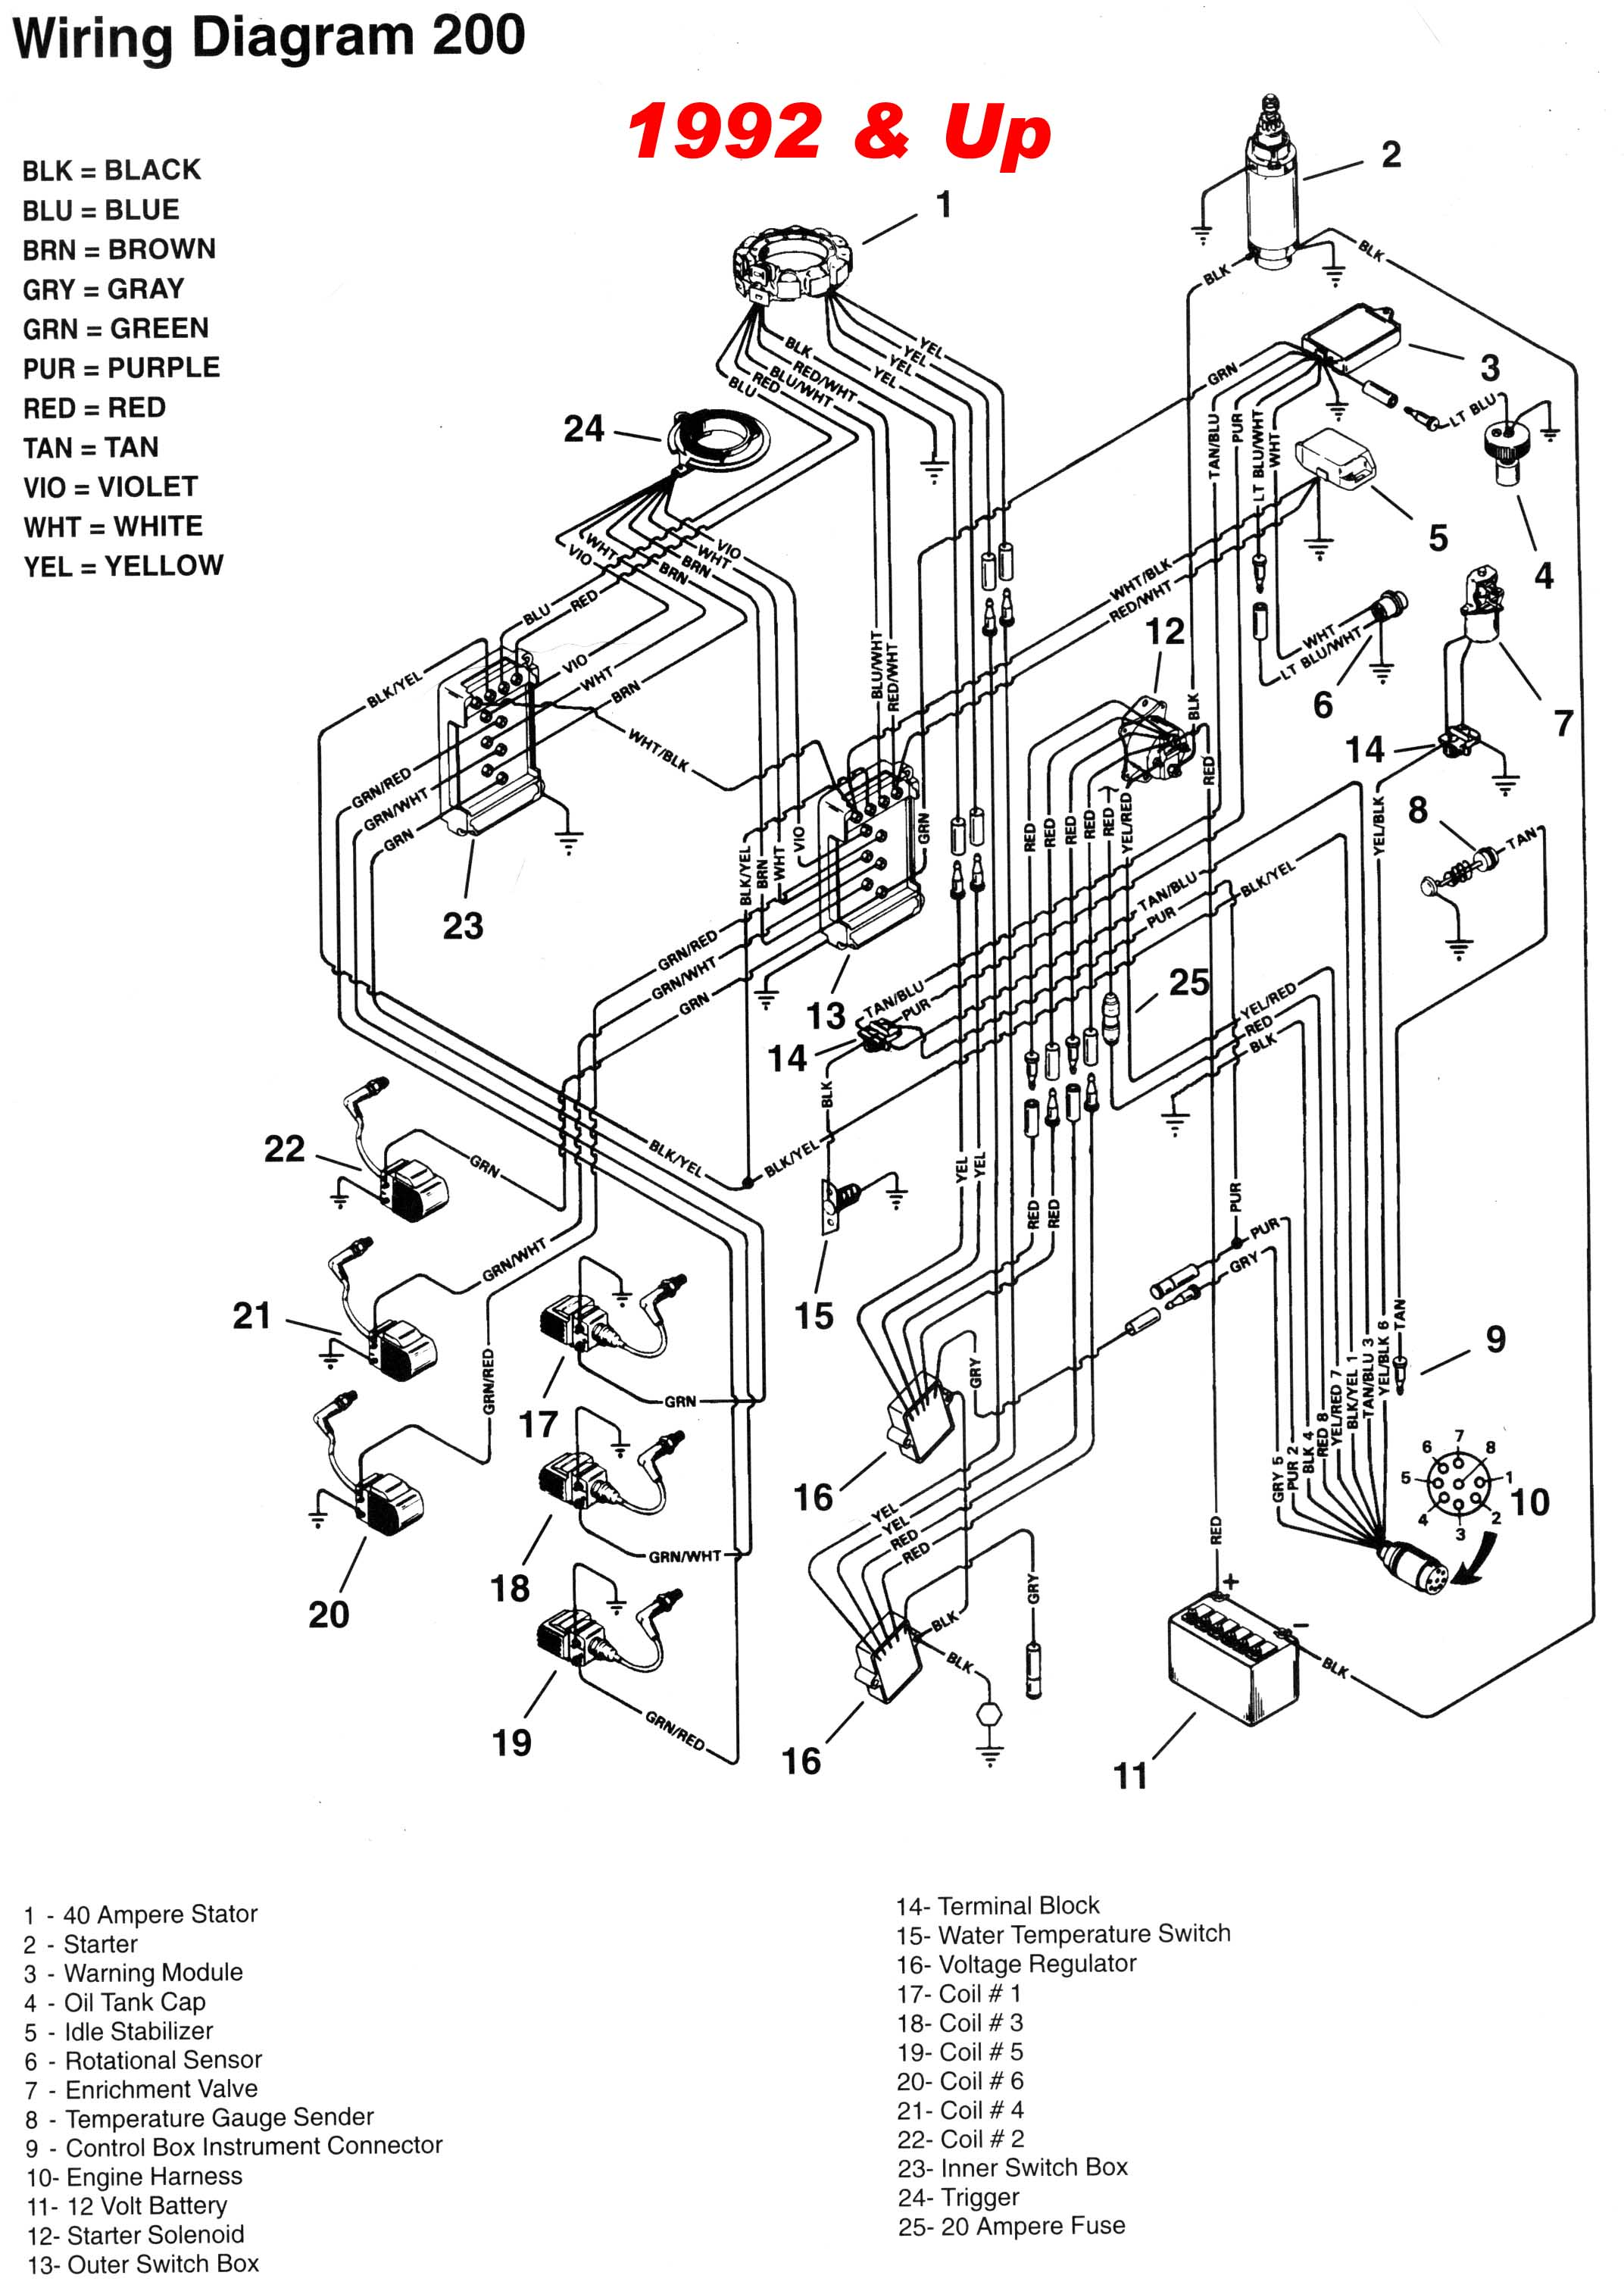 mercury black max wiring diagram wiring diagram for light switch u2022 rh prestonfarmmotors co Yamaha 200 Outboard Wiring Diagram Yamaha Marine Outboard Wiring Diagram